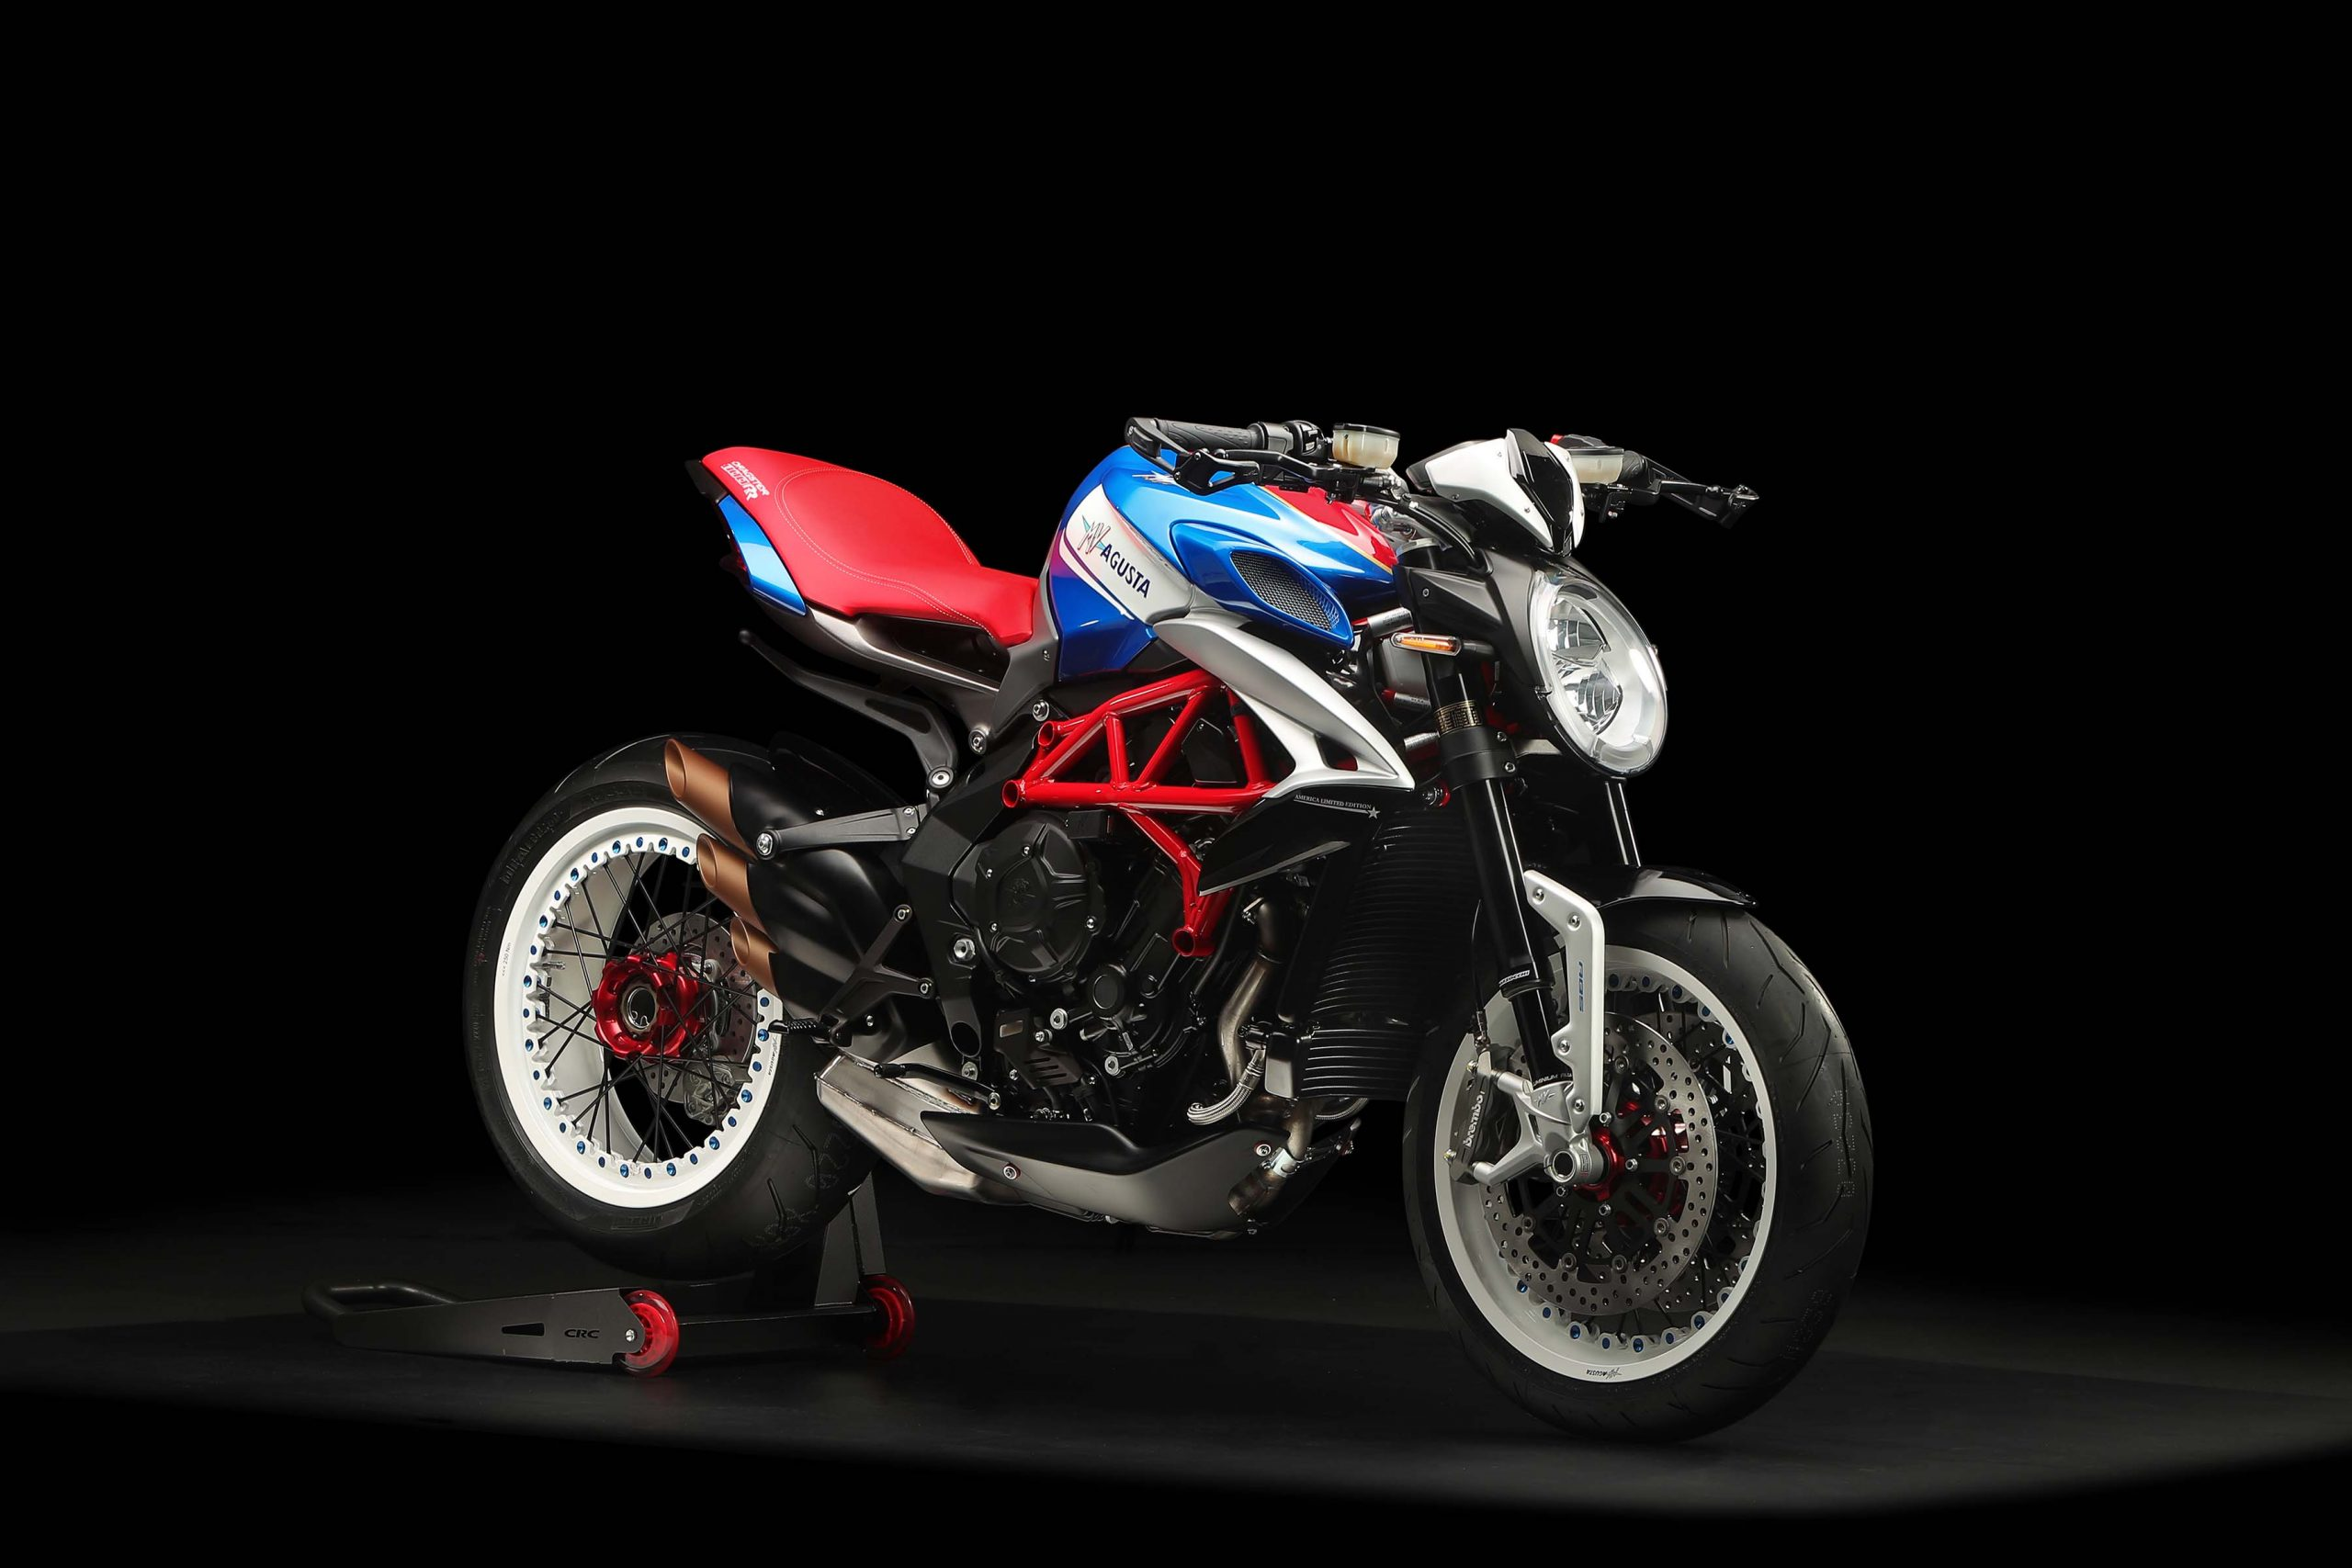 Mv Agusta Dragster 800 Rr America An Homage To The Past Asphalt Rubber